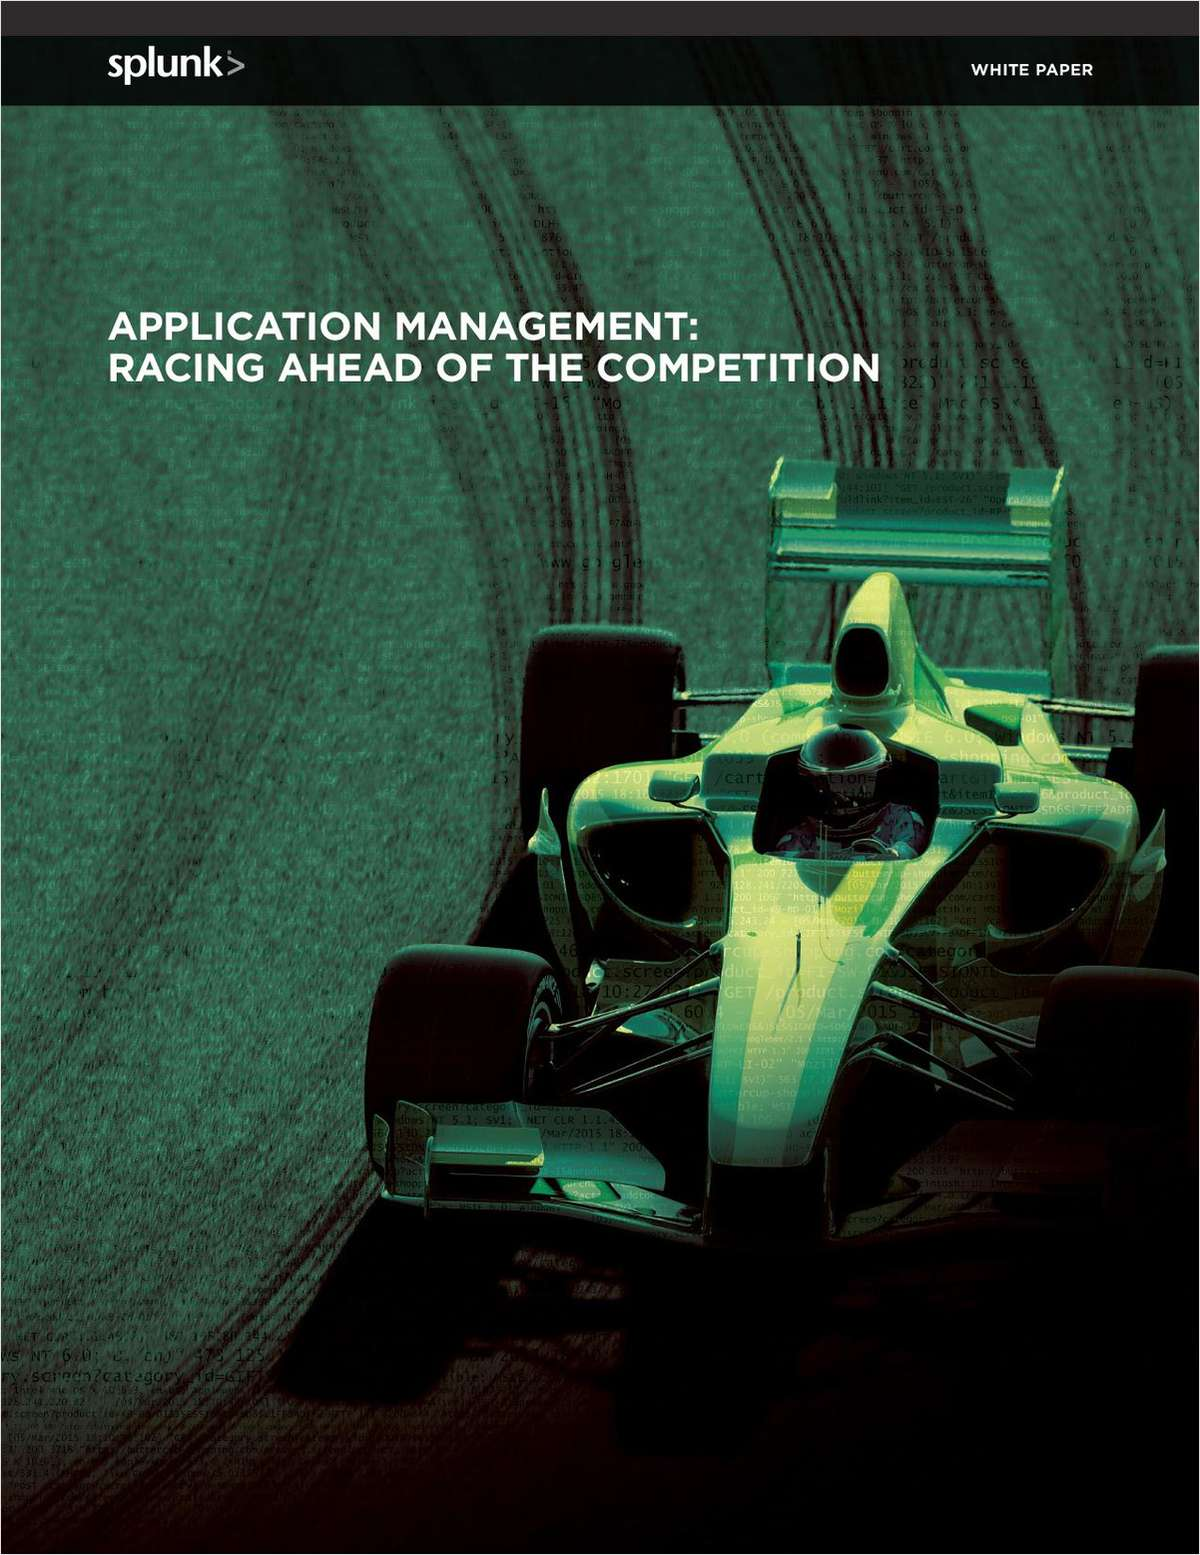 Application Management: Racing Ahead of the Competition